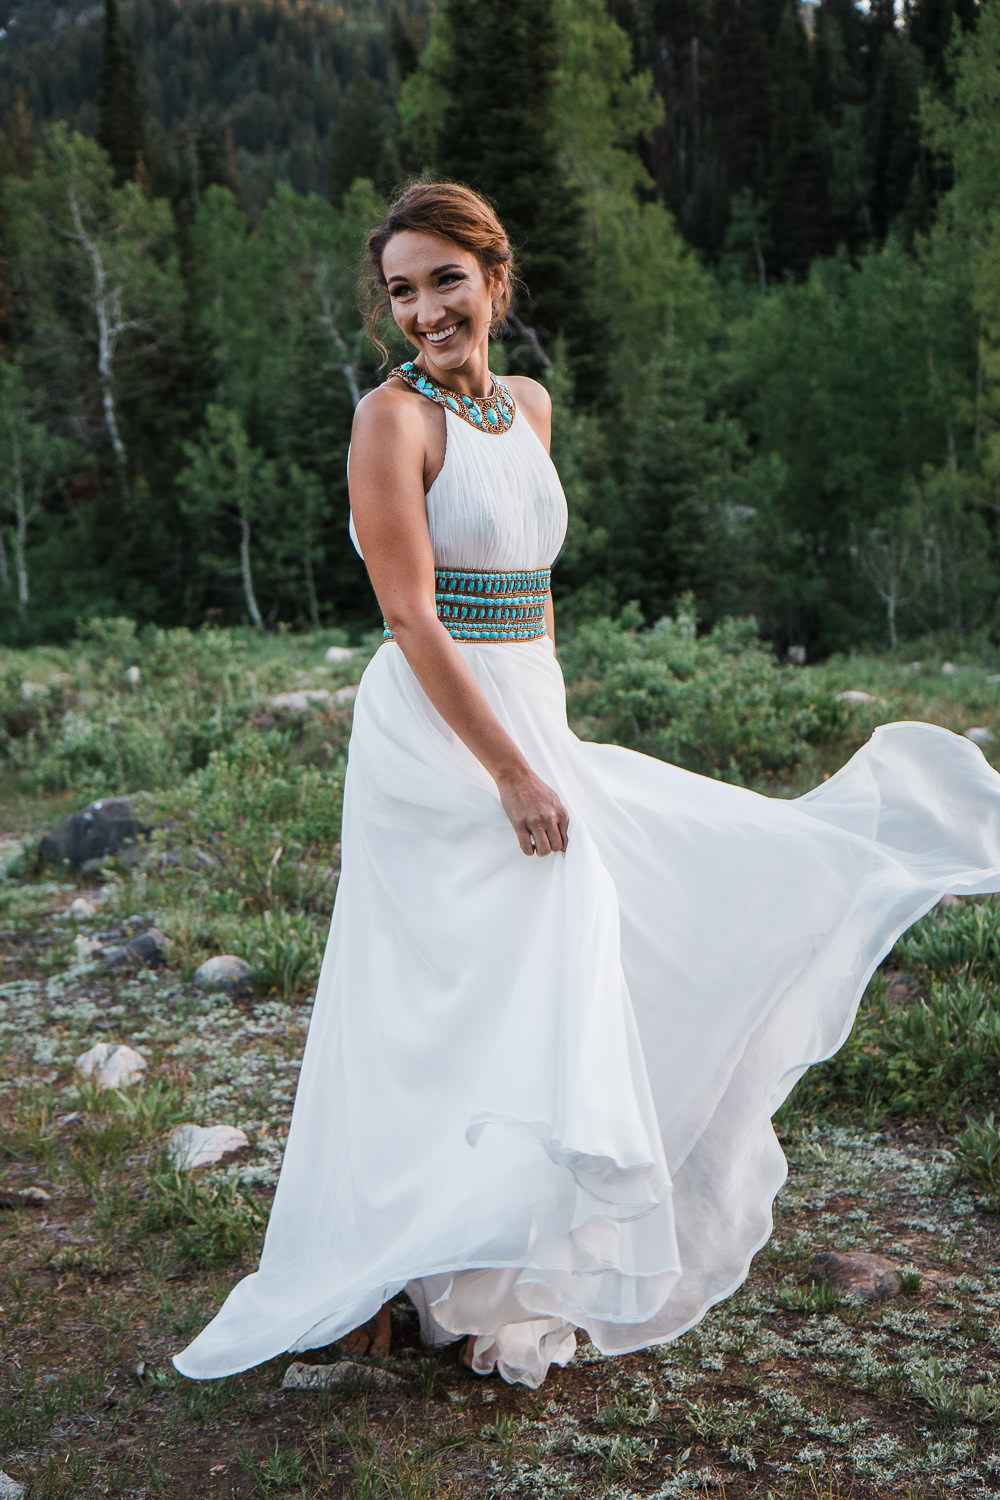 Dress by Bling it on Dress Rentals Riverton Utah